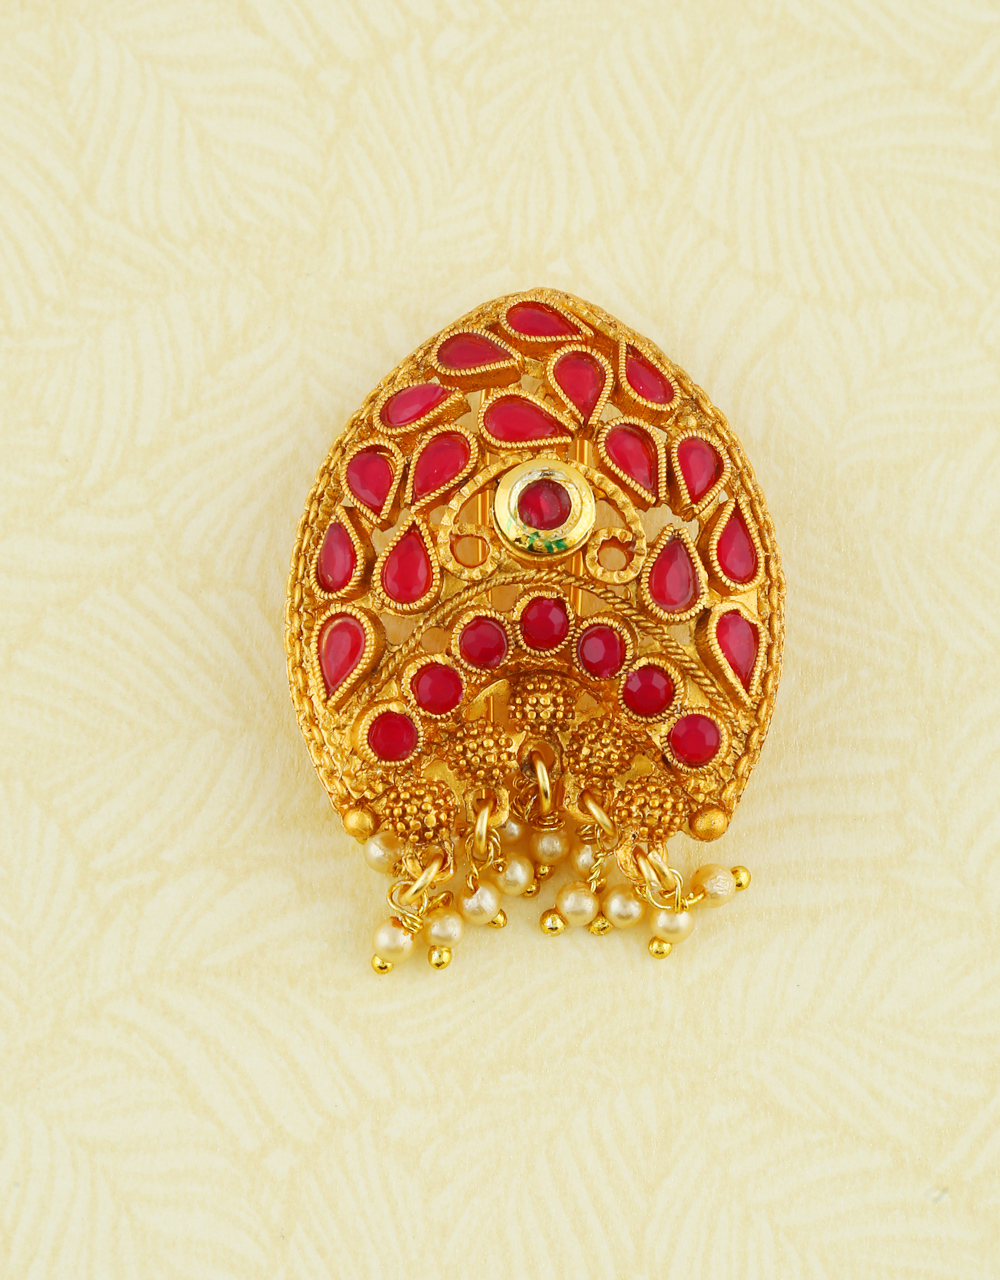 Pink Colour Gold Finish Moti Styled Fancy Brooch Pin For Girls